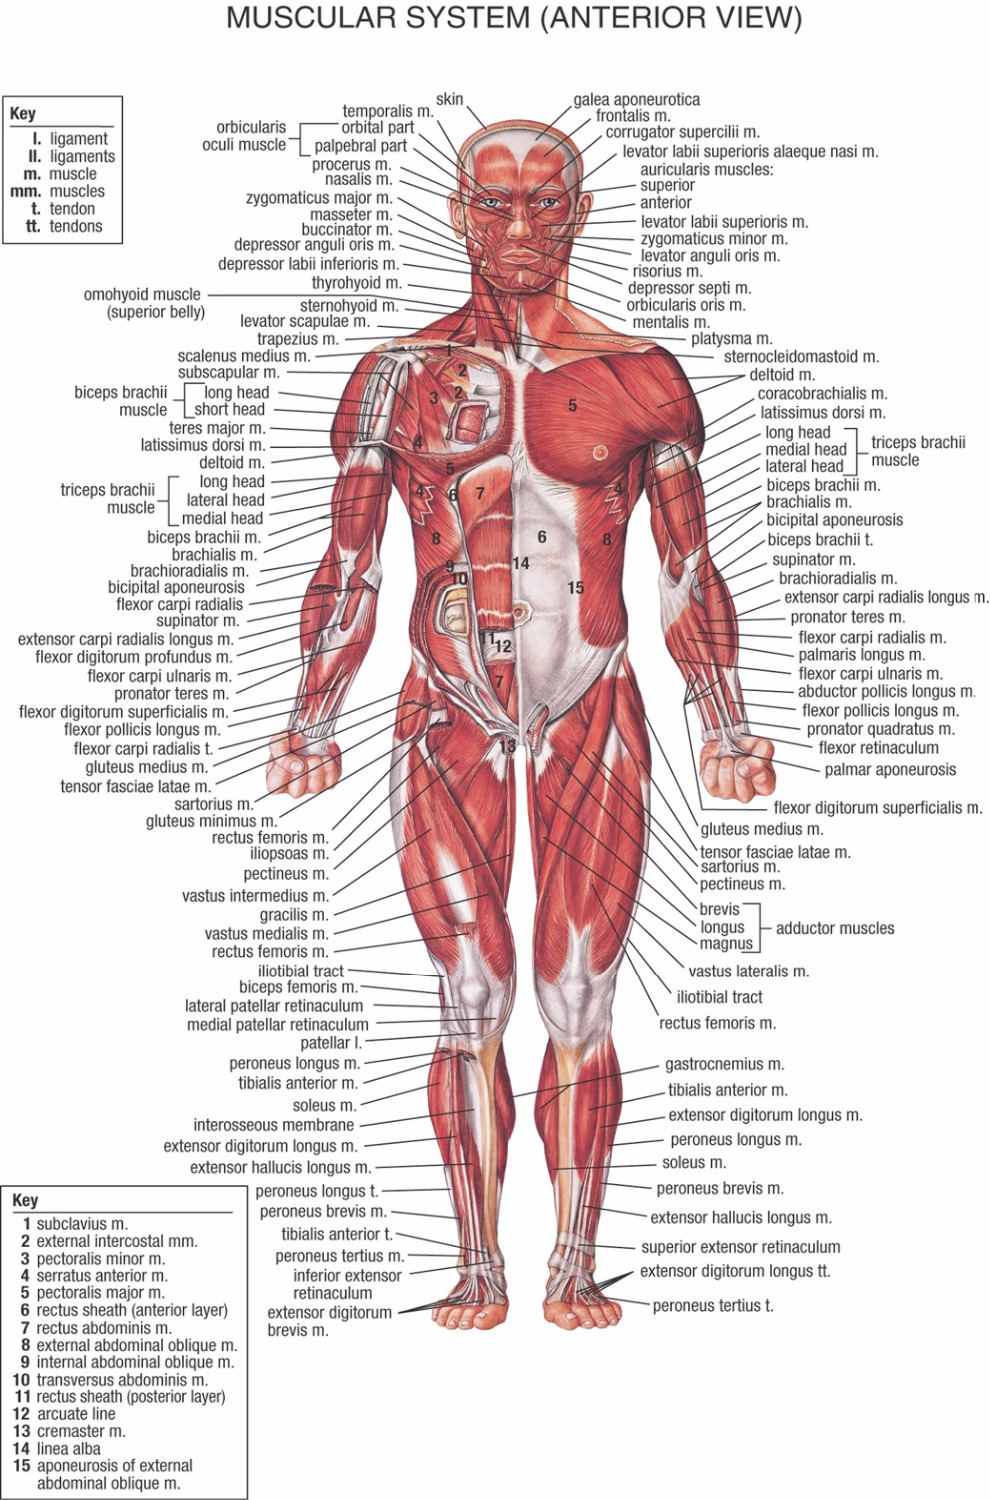 Human Body Anatomical Chart Muscular System Campus Knowledge Biology